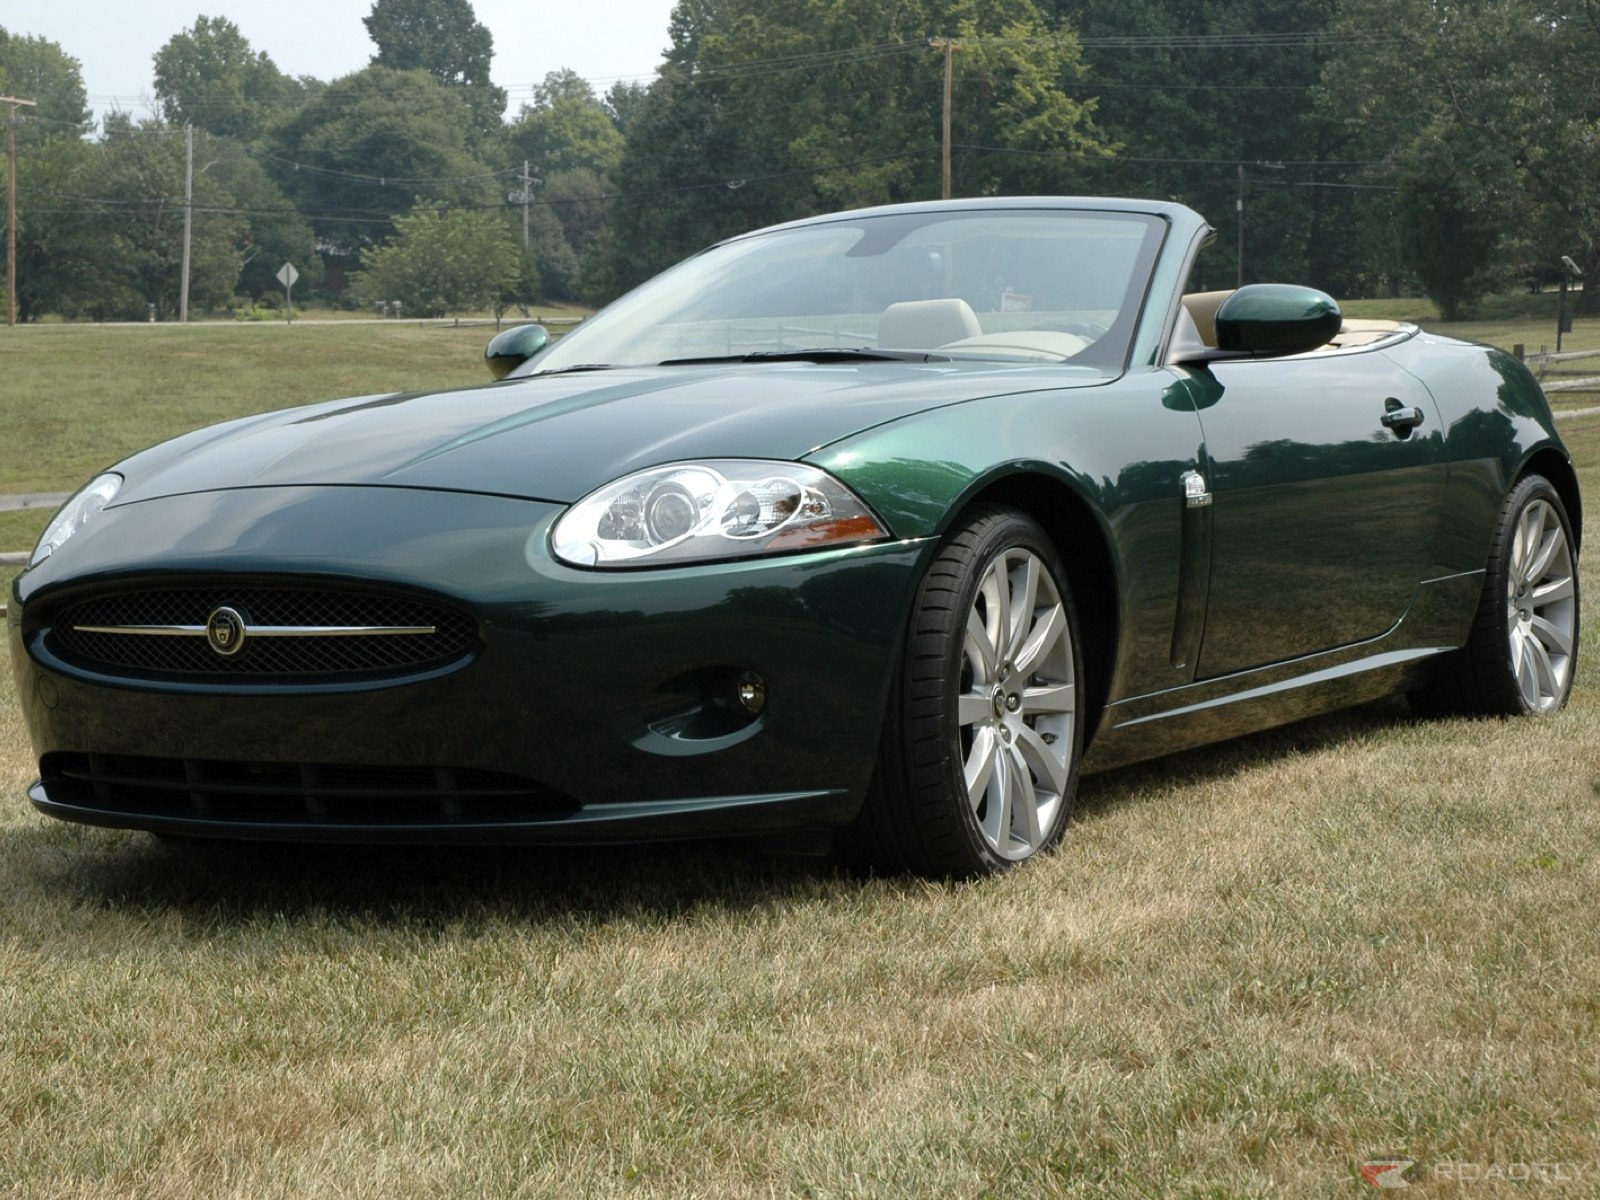 classifieds midatlantic coupe private for jaguar img forum forums sale buy trade fs